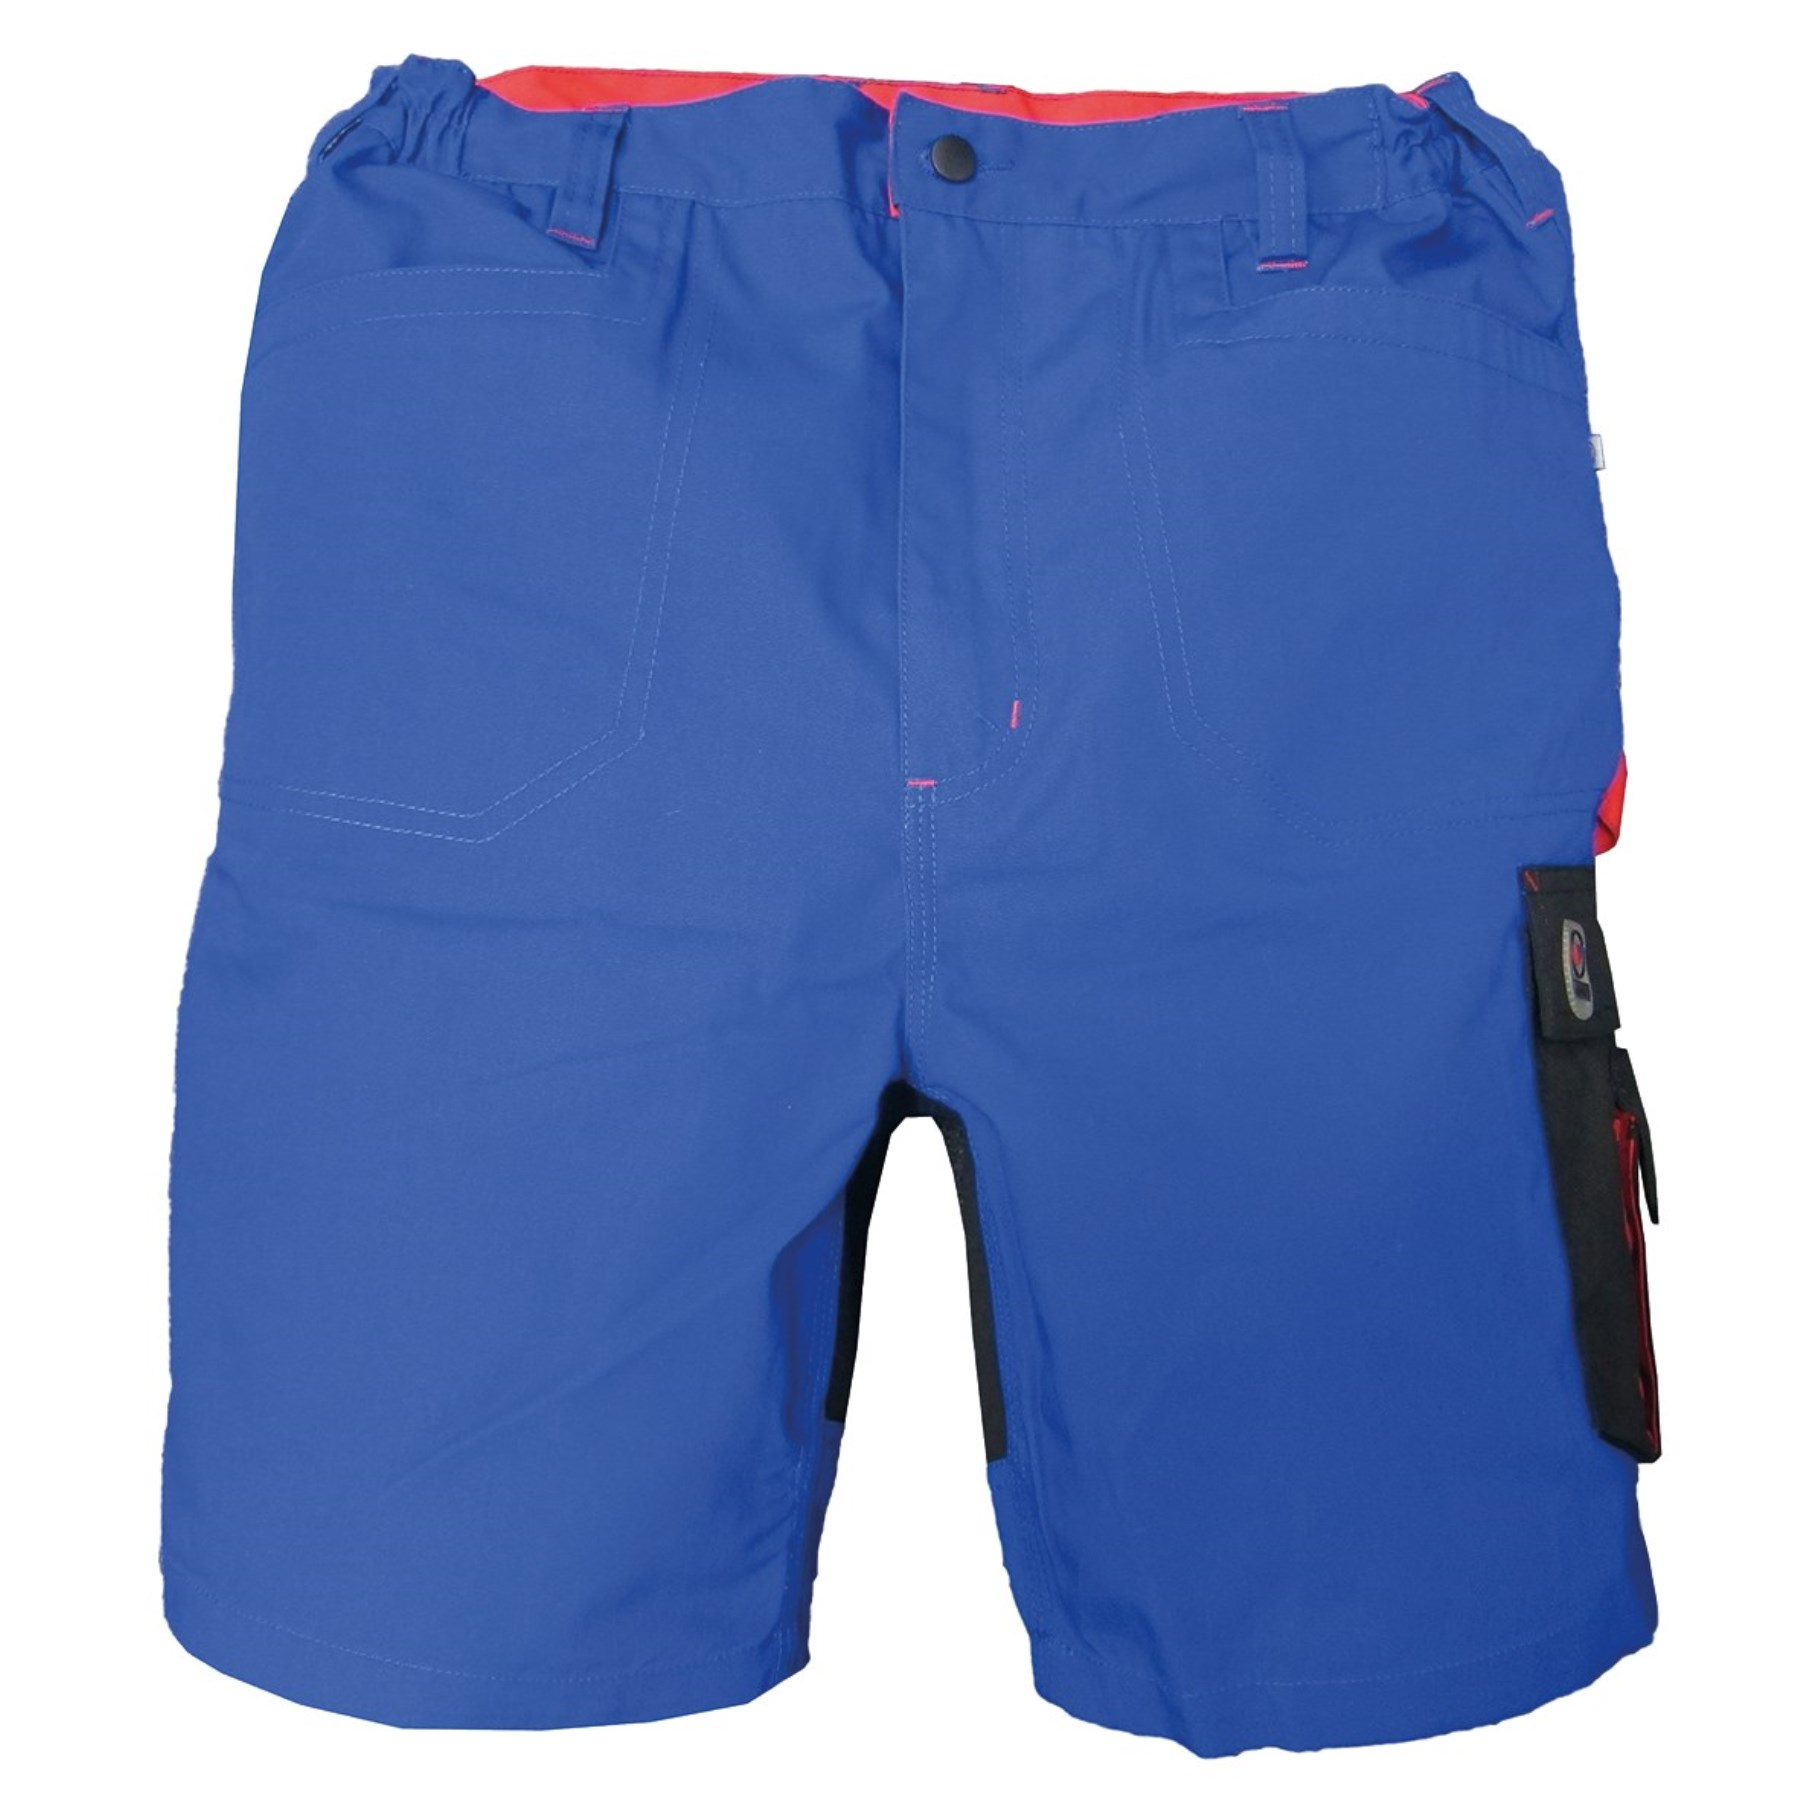 1234345 - Short royal/rot